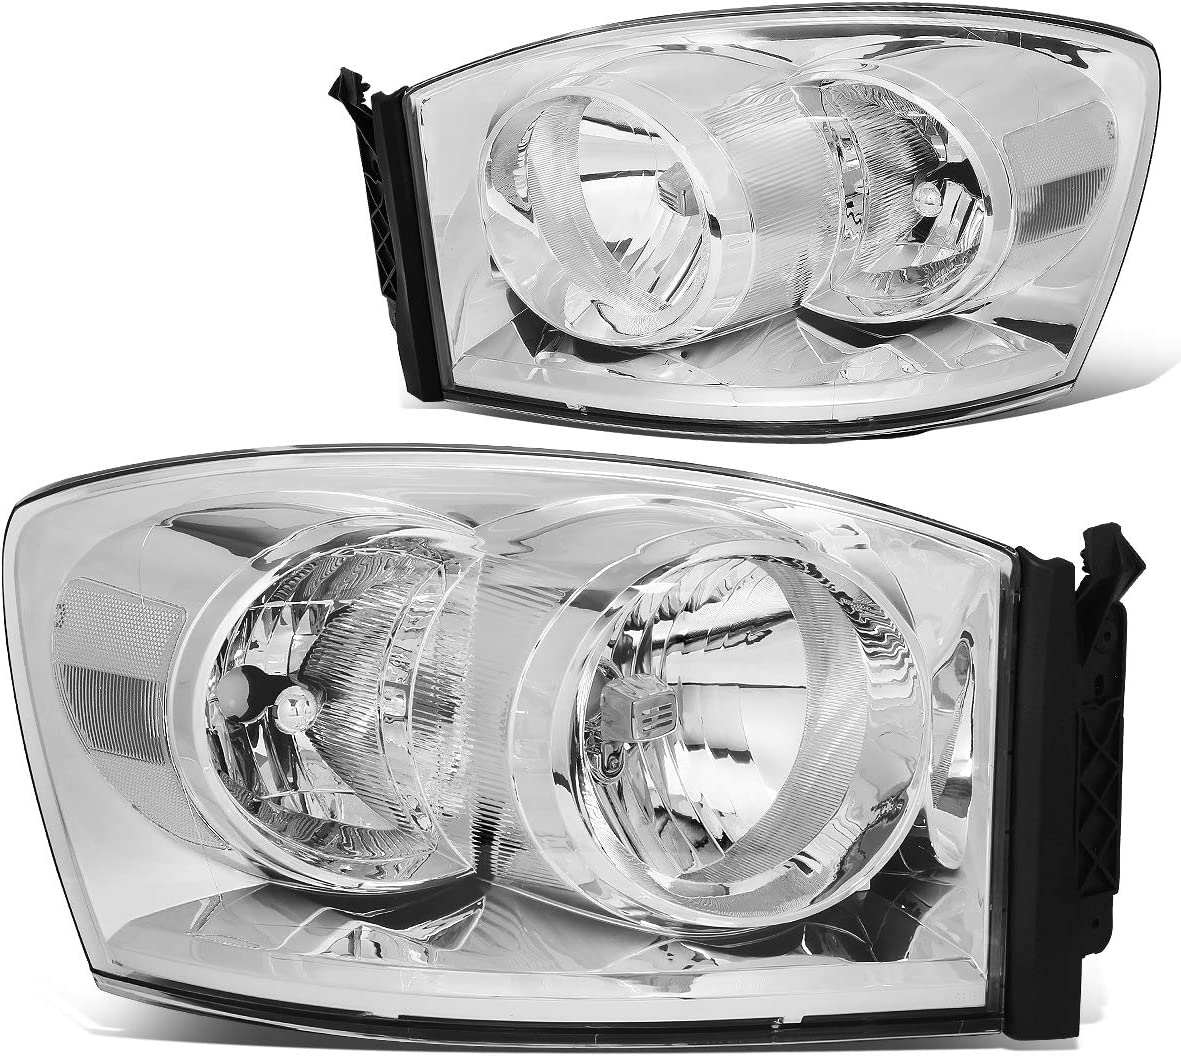 Pair Chrome Housing Clear Side Front Bumper Driving Headlight Lamps for 06-09 Dodge Ram Truck